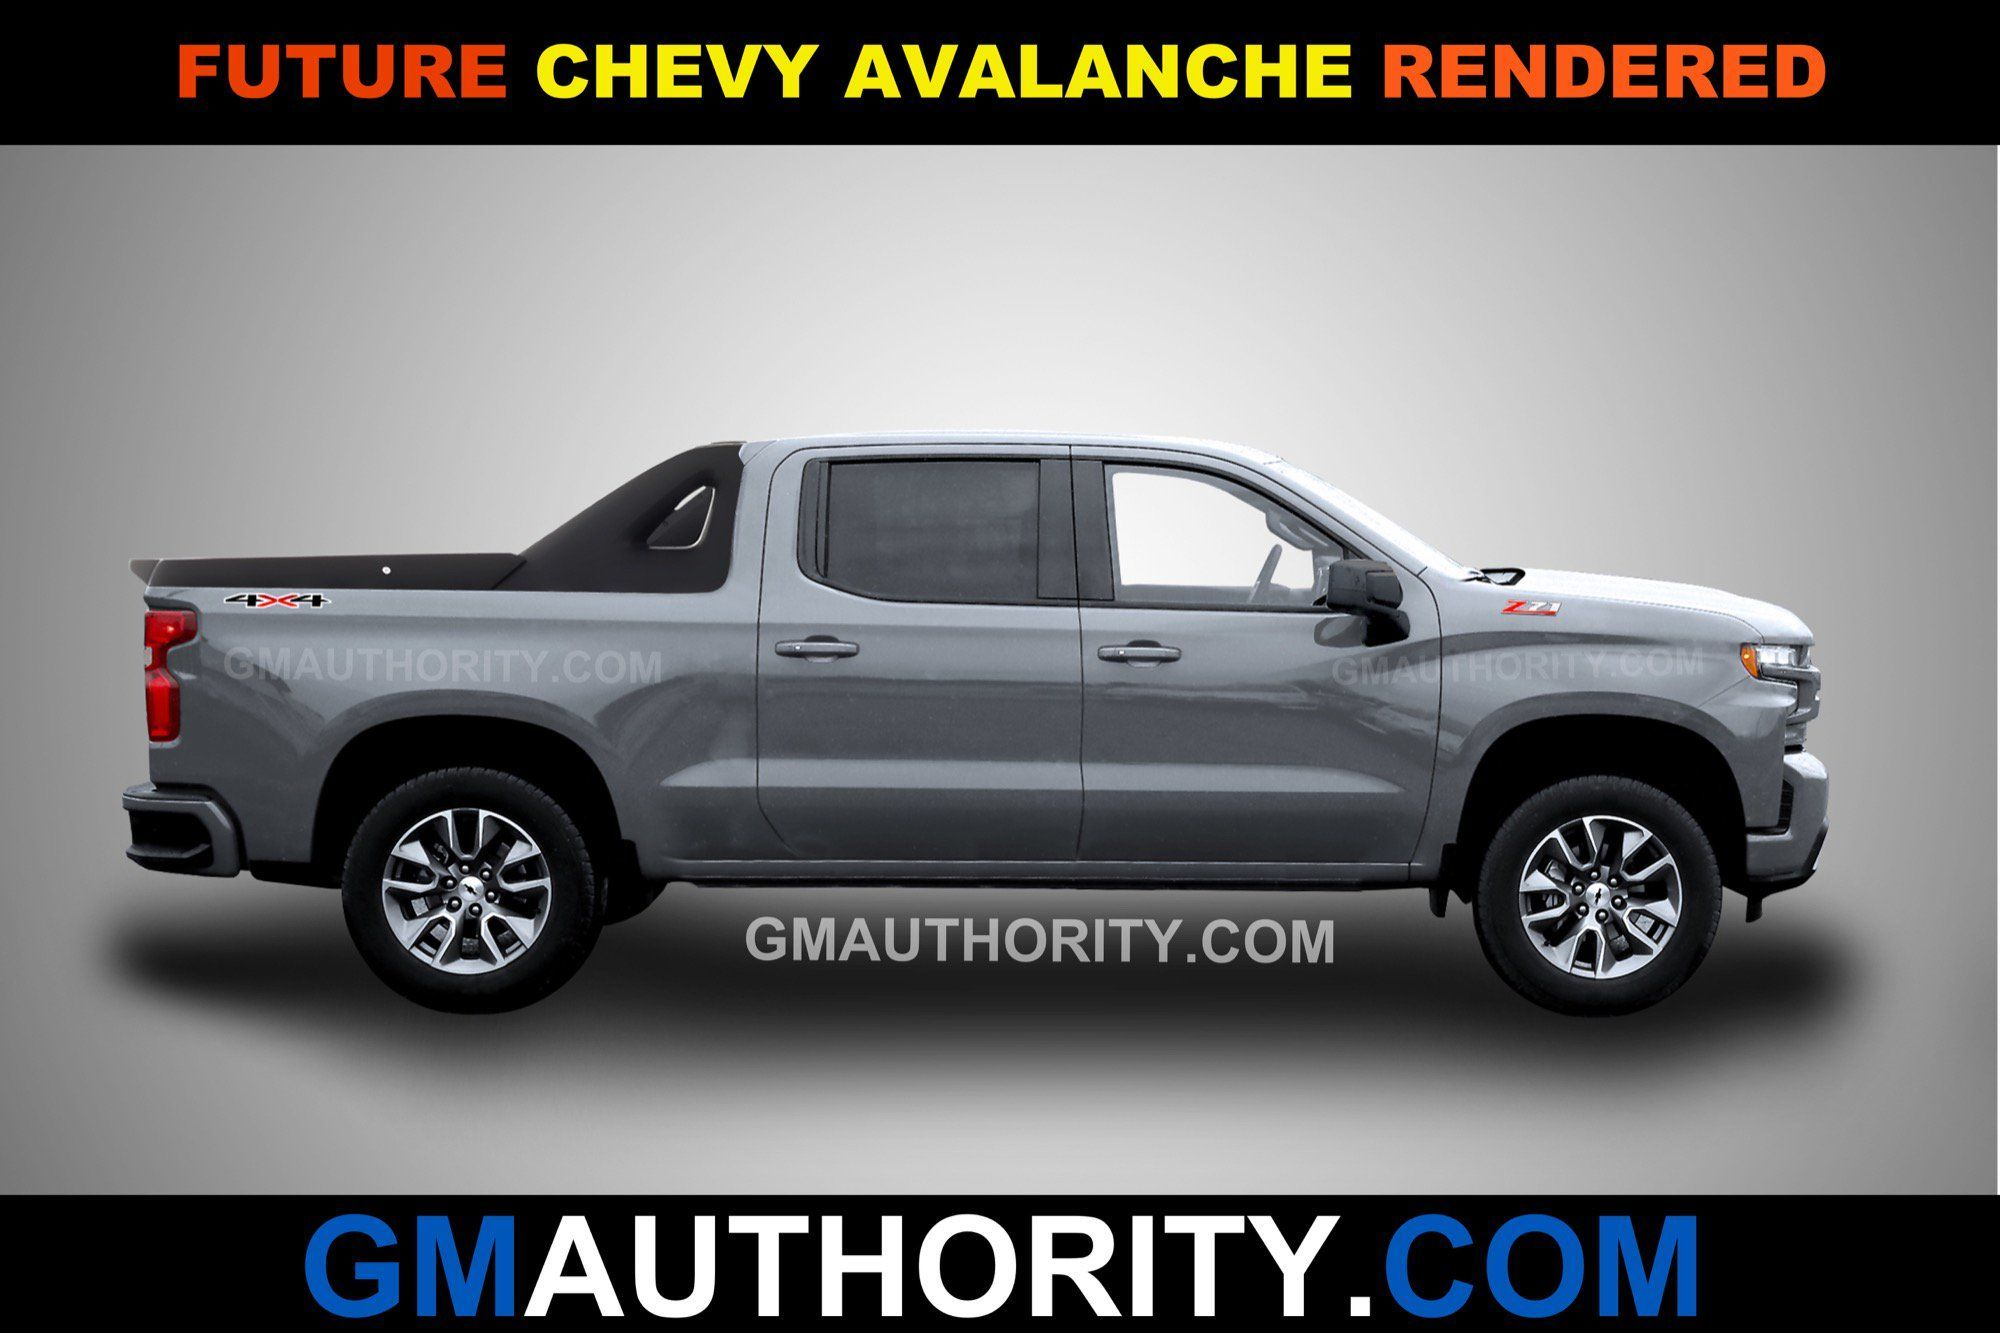 2020 Chevy Avalanche Exterior And Interior Chevy Avalanche